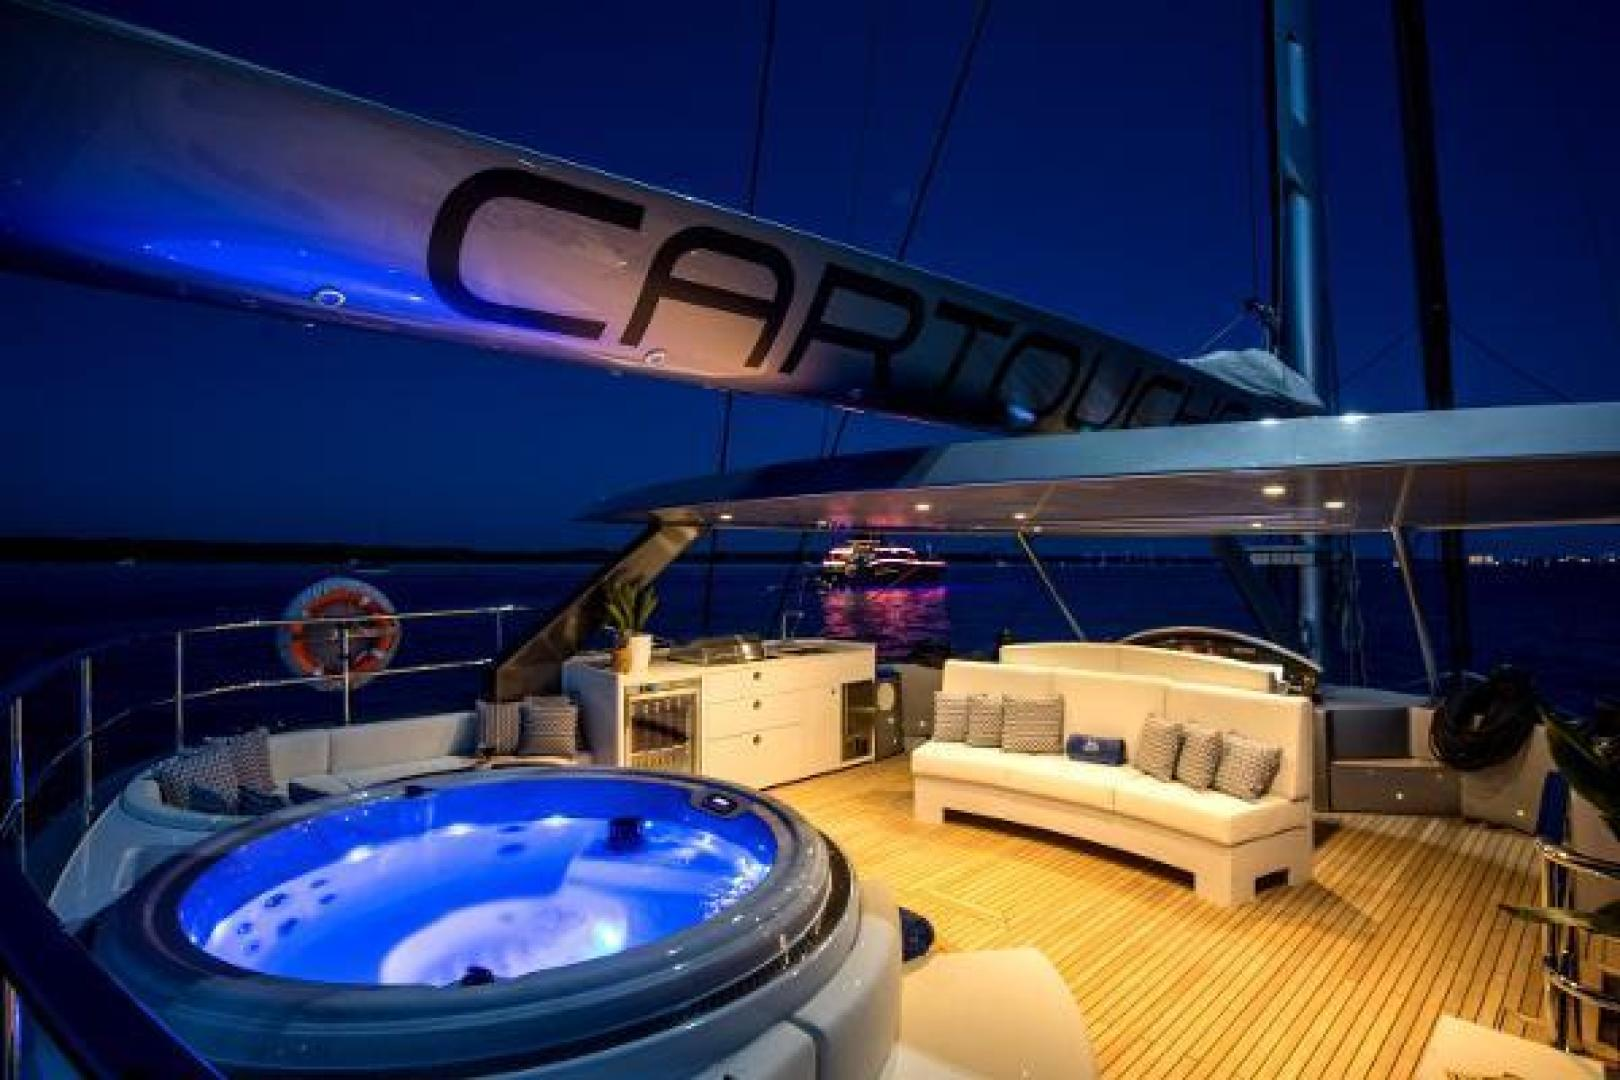 Catamaran-Blue Coast Yachts  2011-CARTOUCHE Antigua & Barbuda-1296539 | Thumbnail